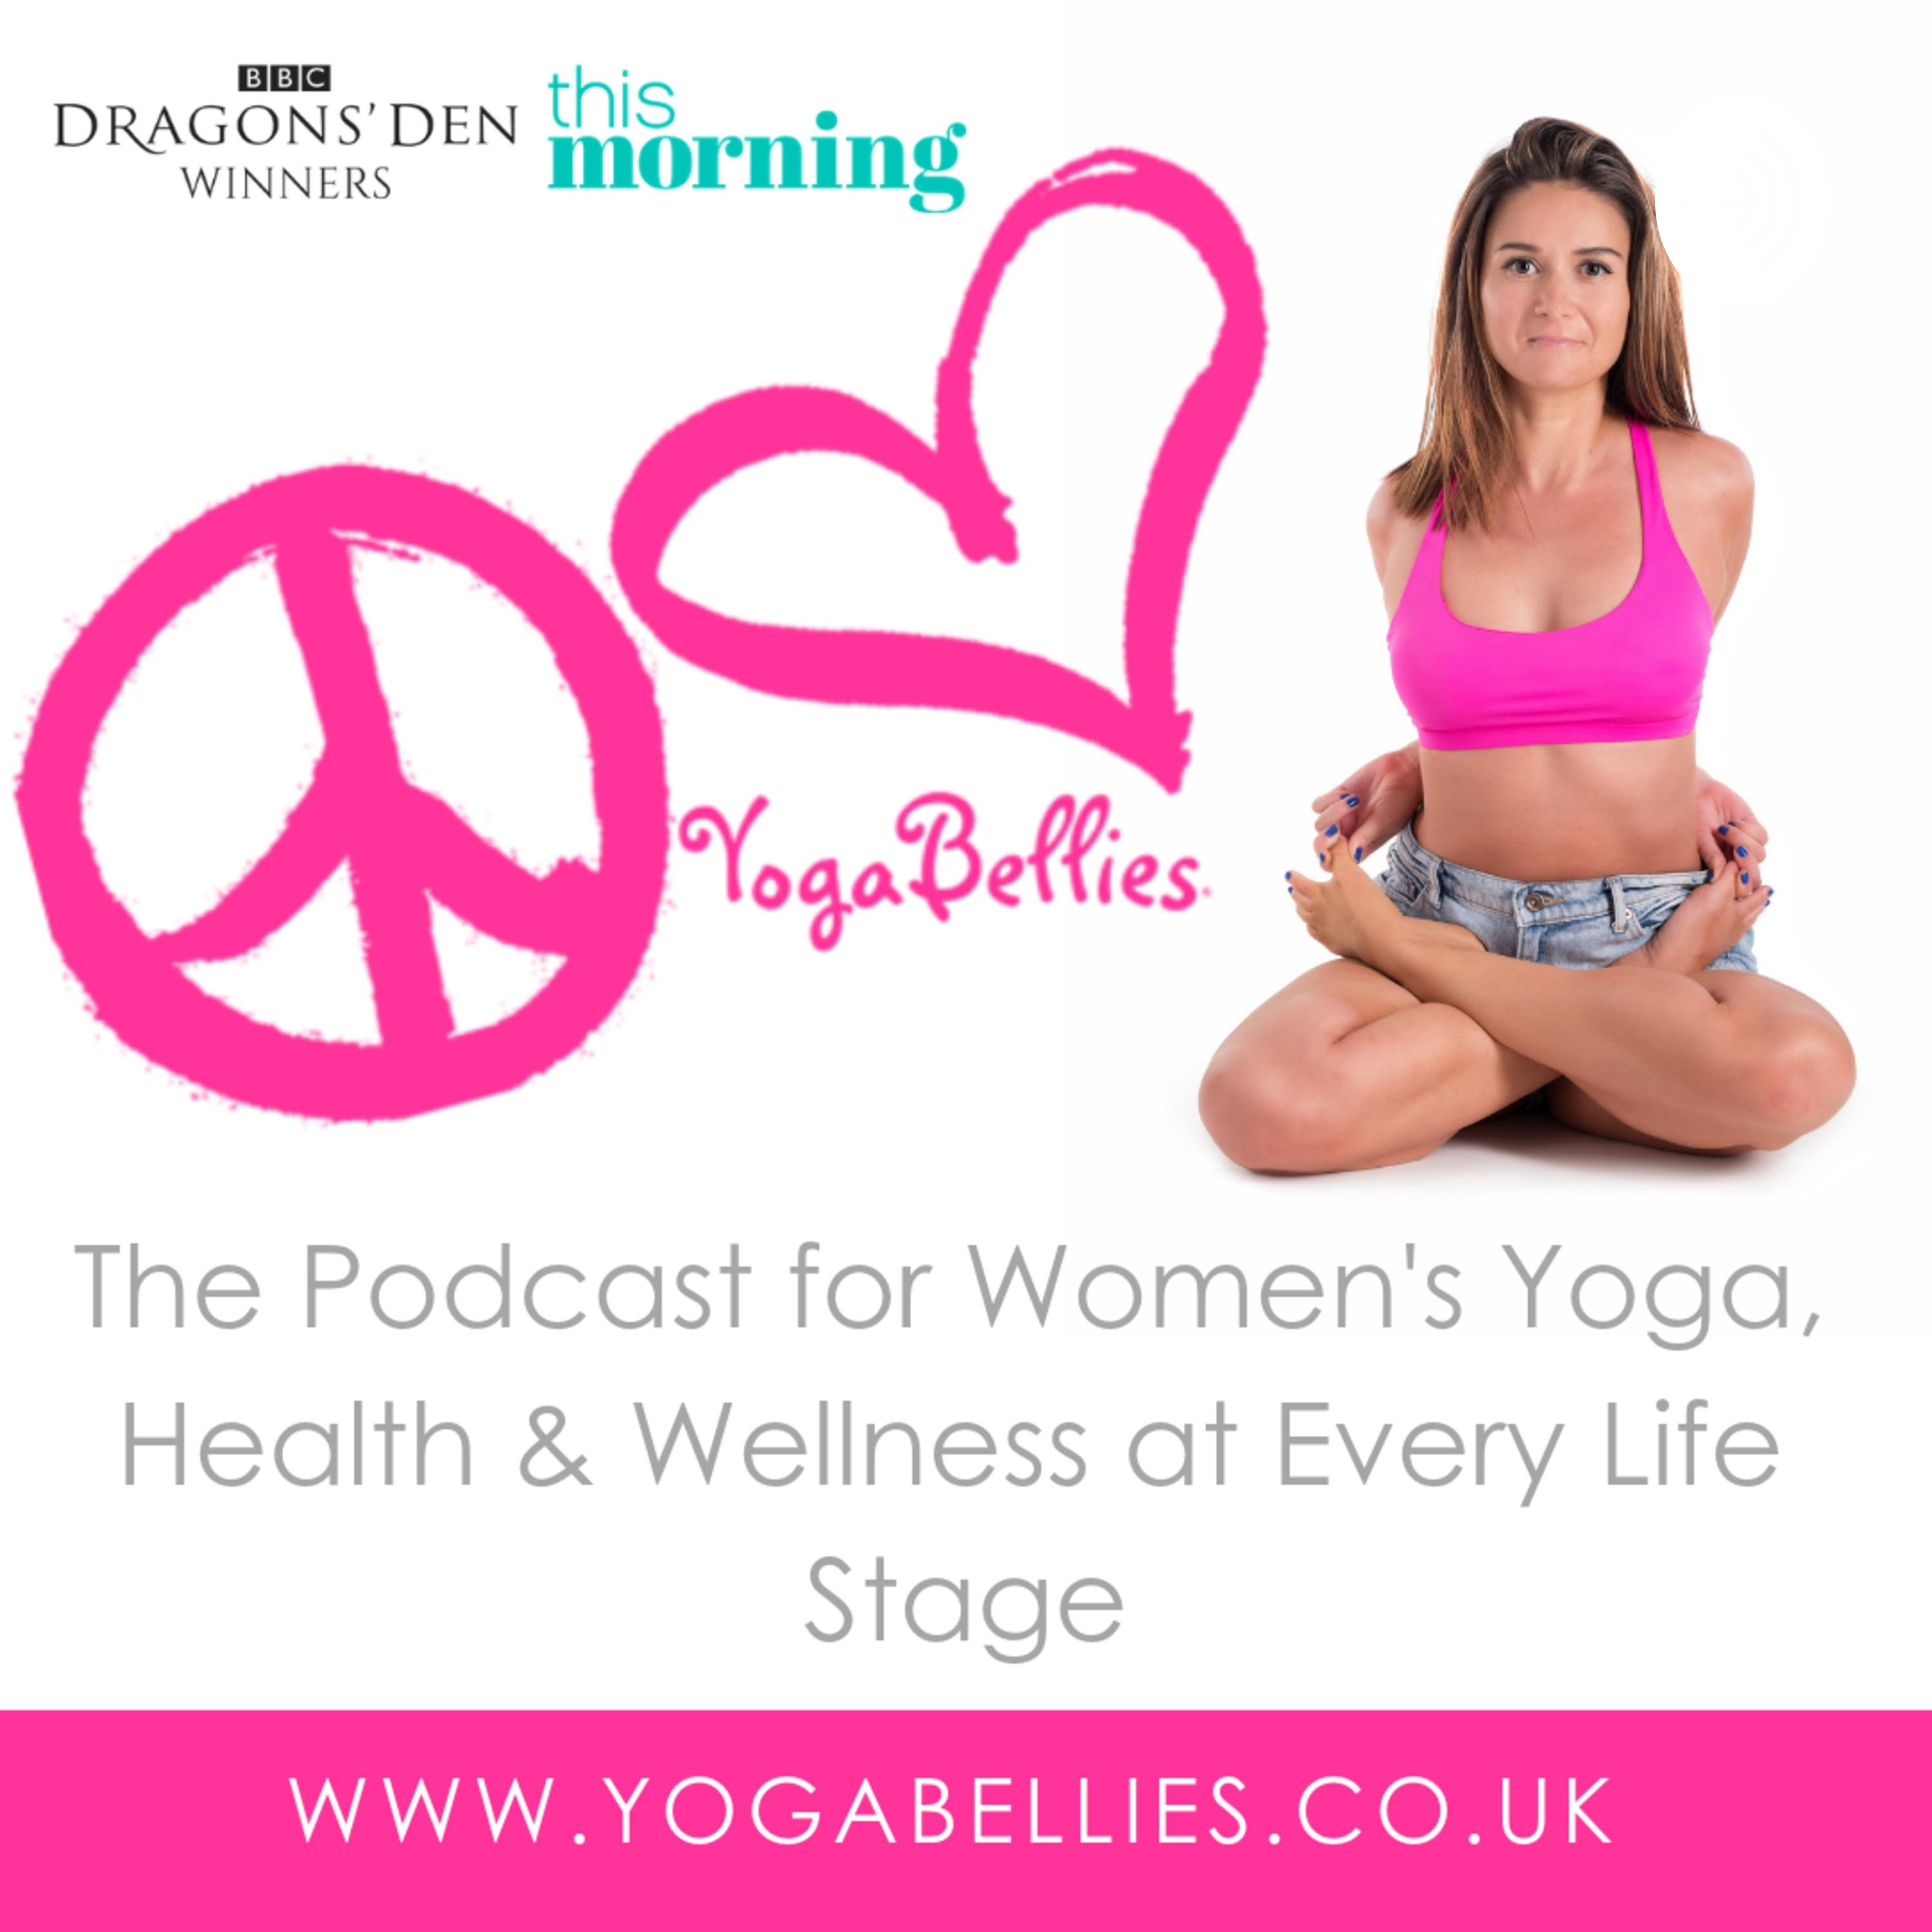 5 Top Tips for Keeping Up Your Yoga Practice on Holiday with YogaBellies founder, Cheryl